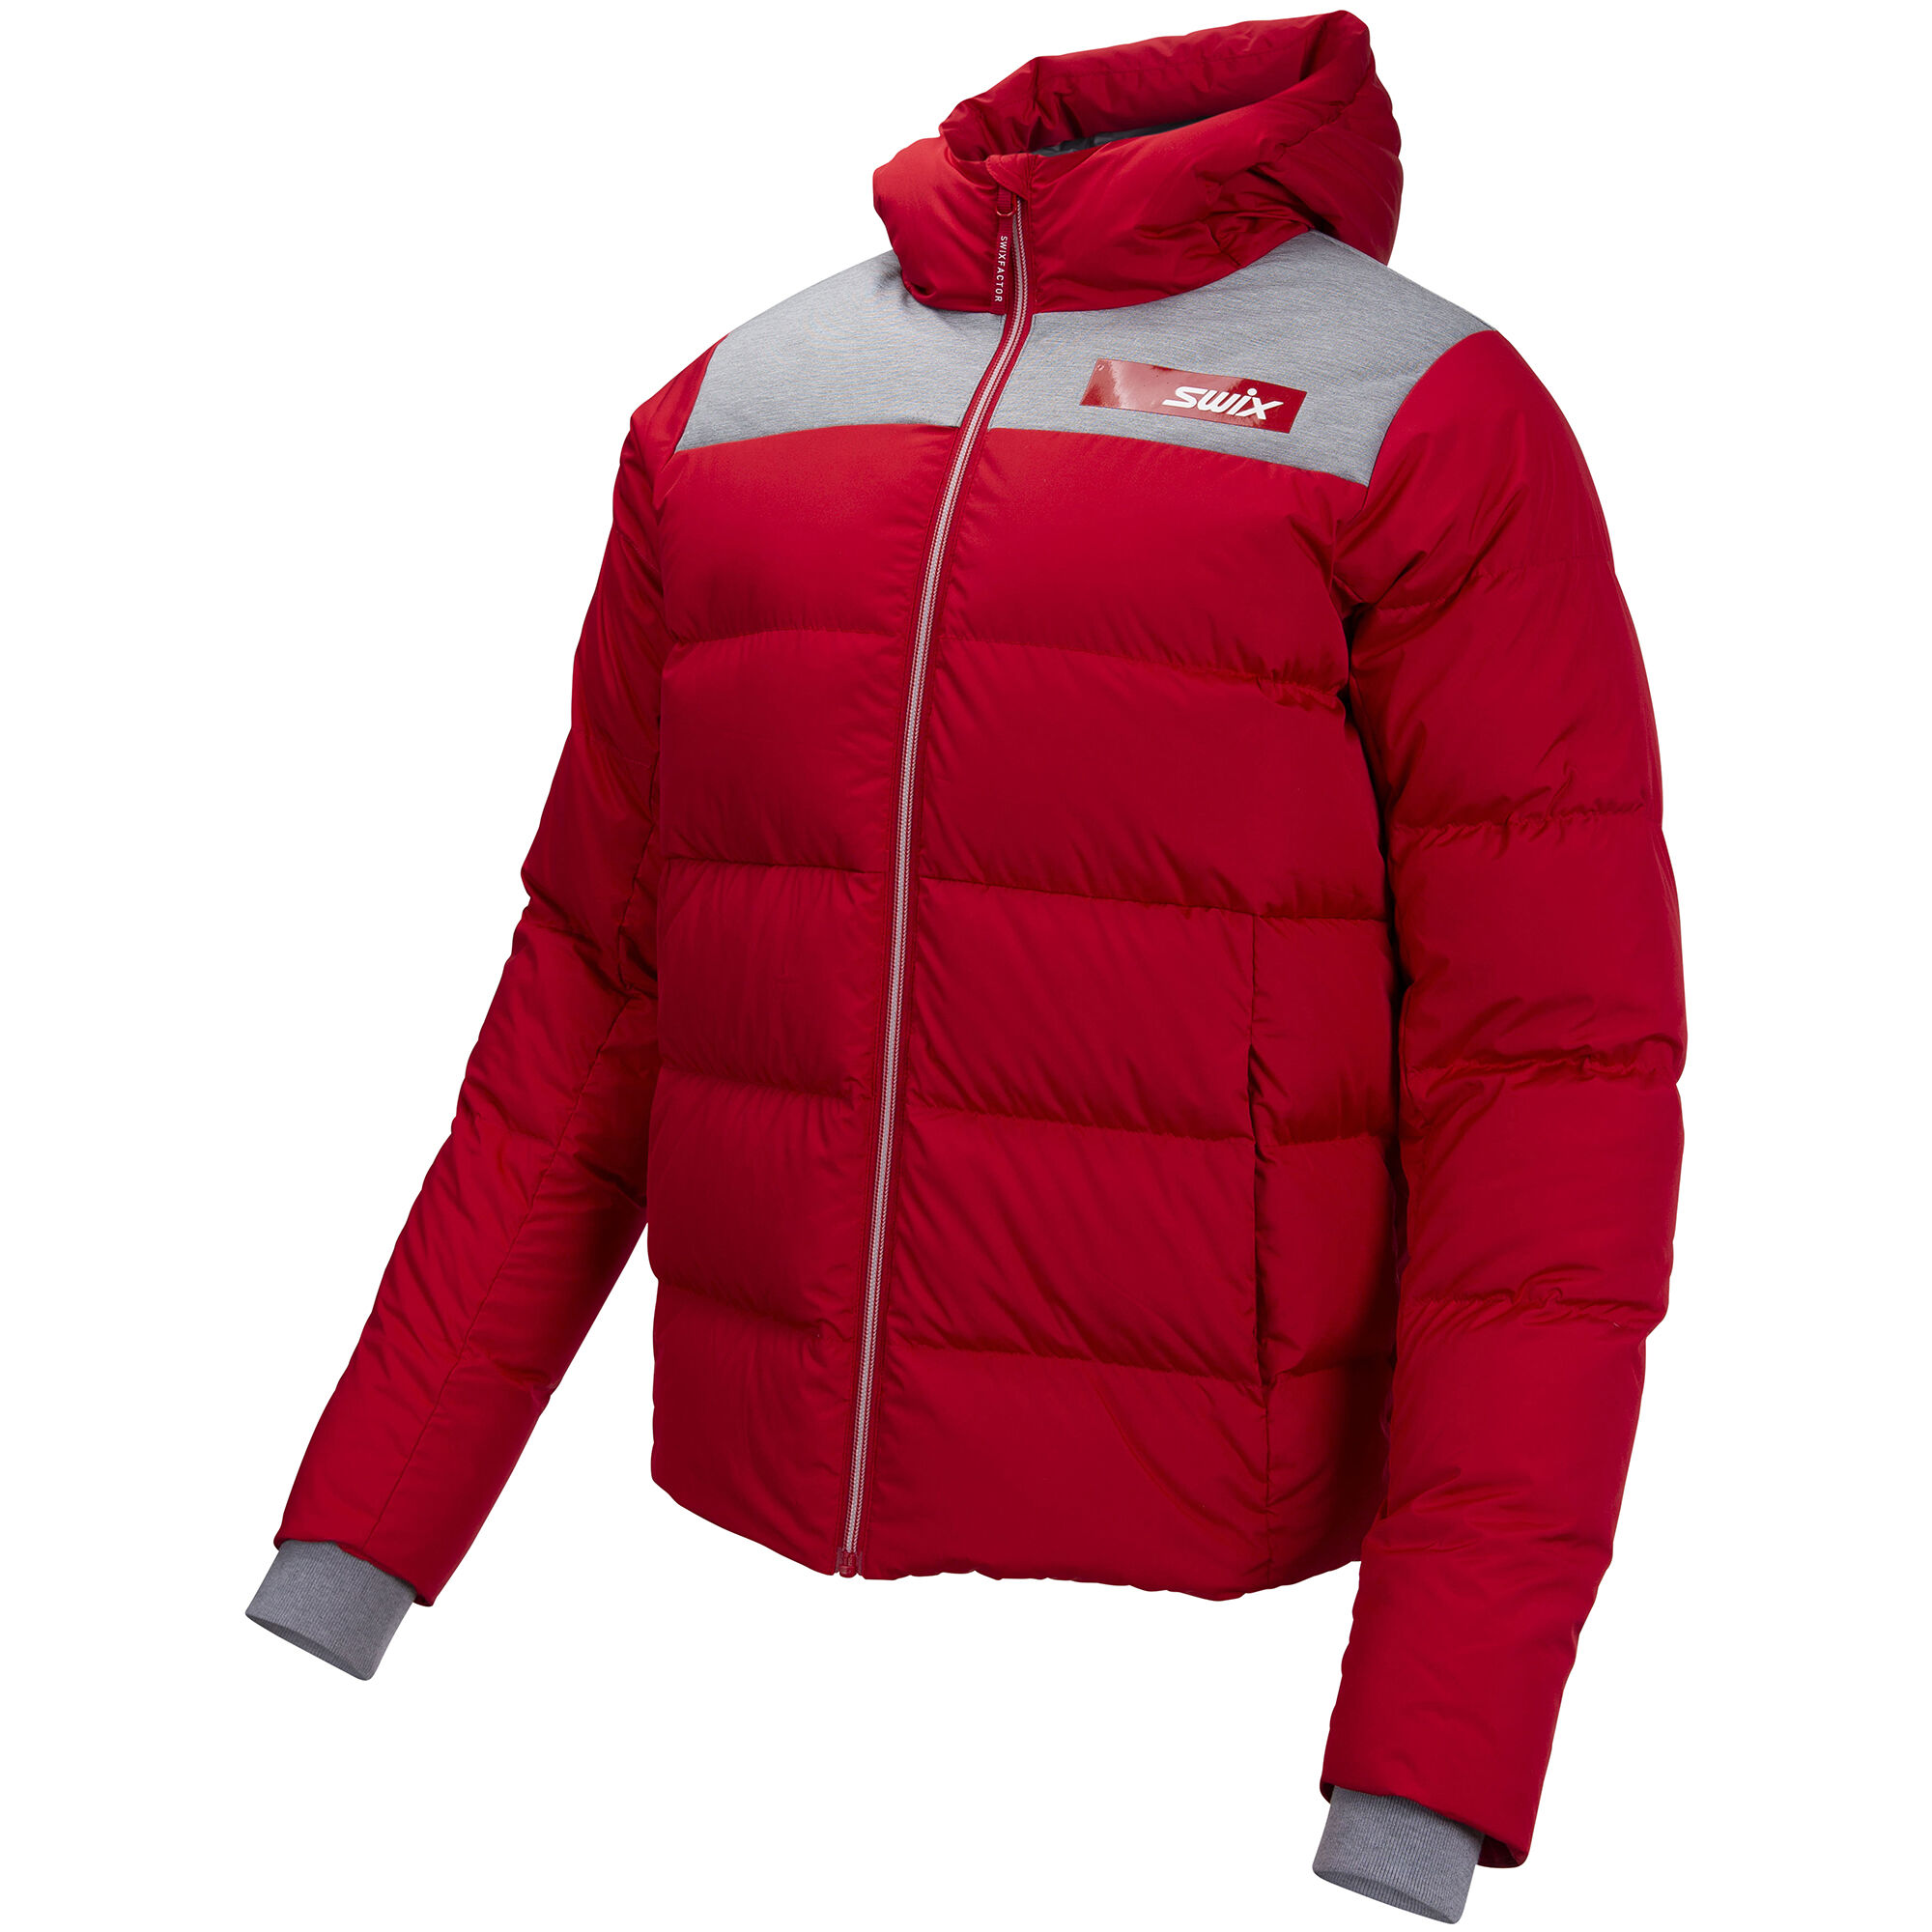 SWIX-20-21-13161-99990-Focus Down jacket M